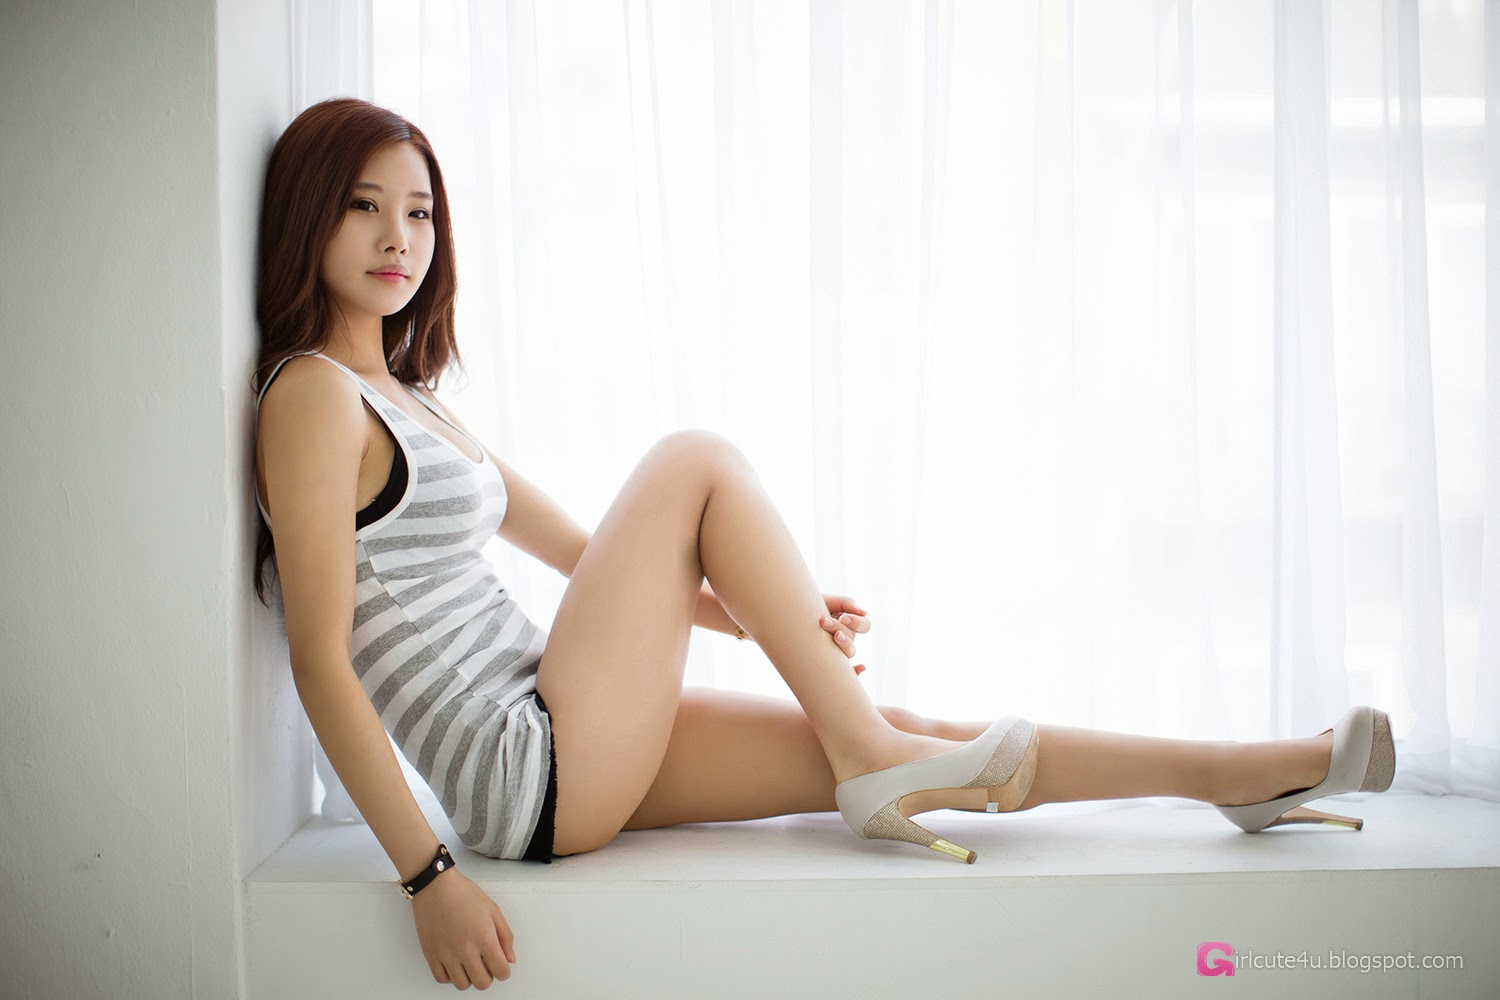 1 Morning Photo Session With Gorgeous Yeon Ji Eun - very cute asian girl-girlcute4u.blogspot.com